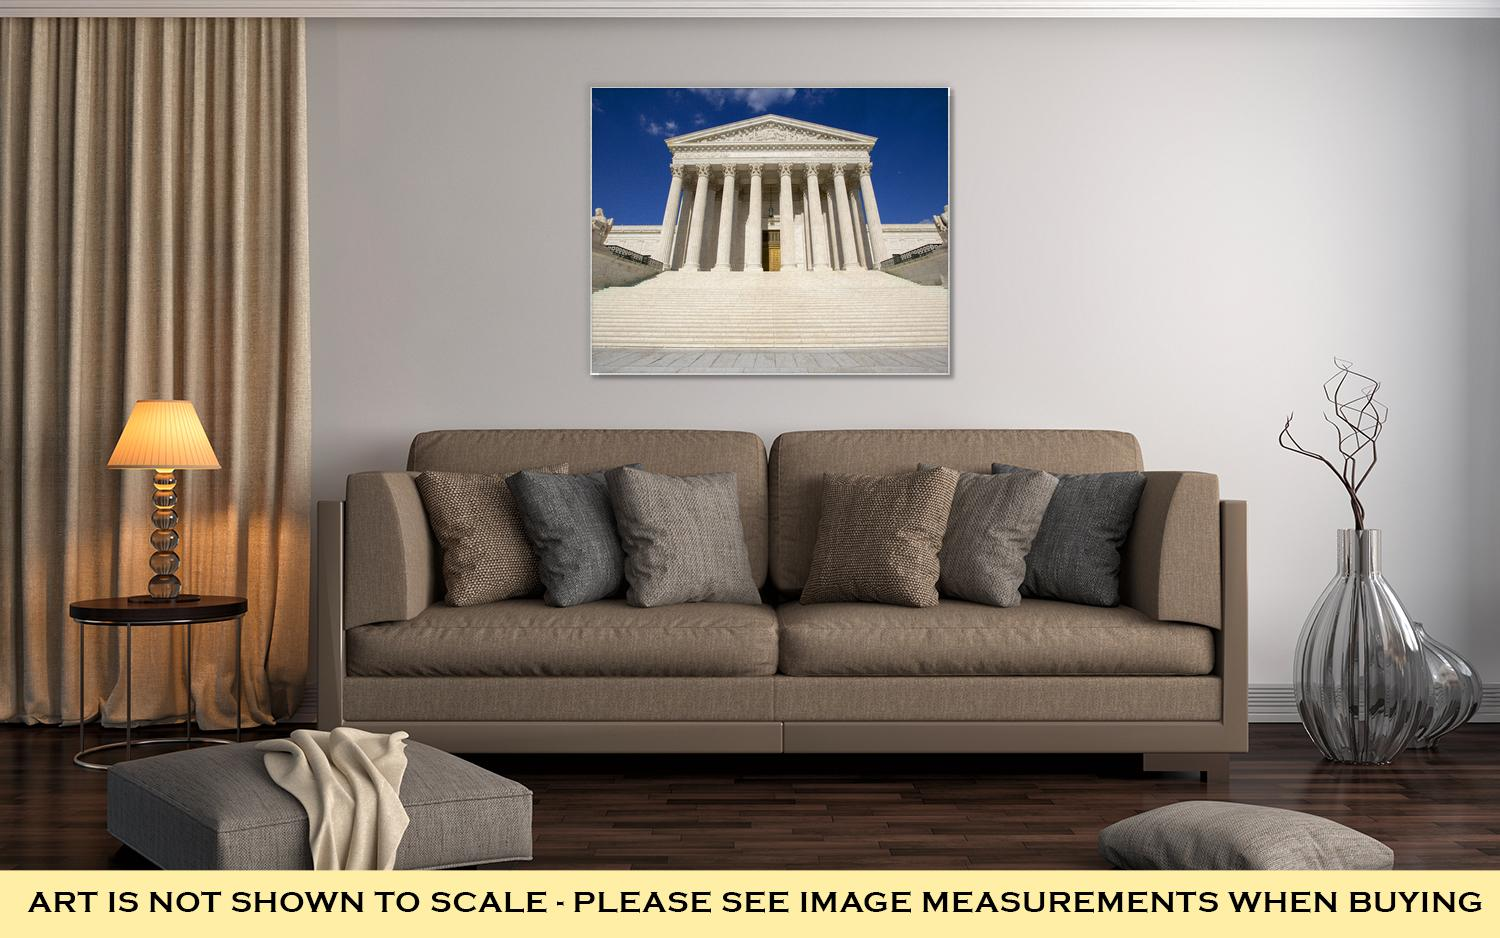 Gallery Wrapped Canvas, Washington DC Supreme Courthouse